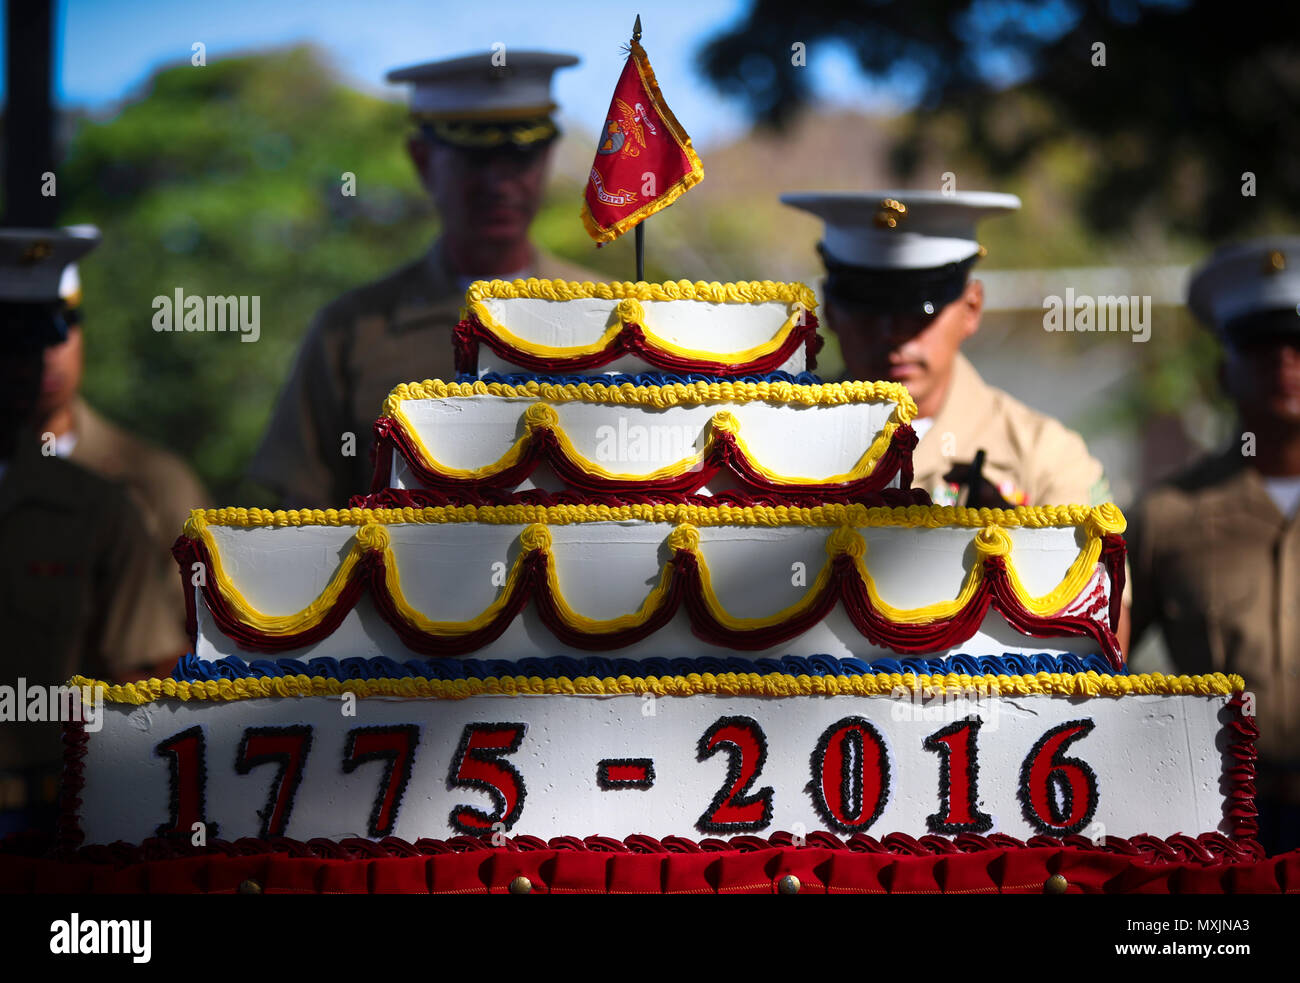 U.S. Marines assigned to Headquarters Battalion, Marine Corps Base Hawaii (MCBH), prepare to present the birthday cake during the annual Birthday Uniform Pageant at Dewey Square aboard MCBH, Nov. 9, 2016. (U.S. Marine Corps Photo by Cpl. Aaron S. Patterson) - Stock Image